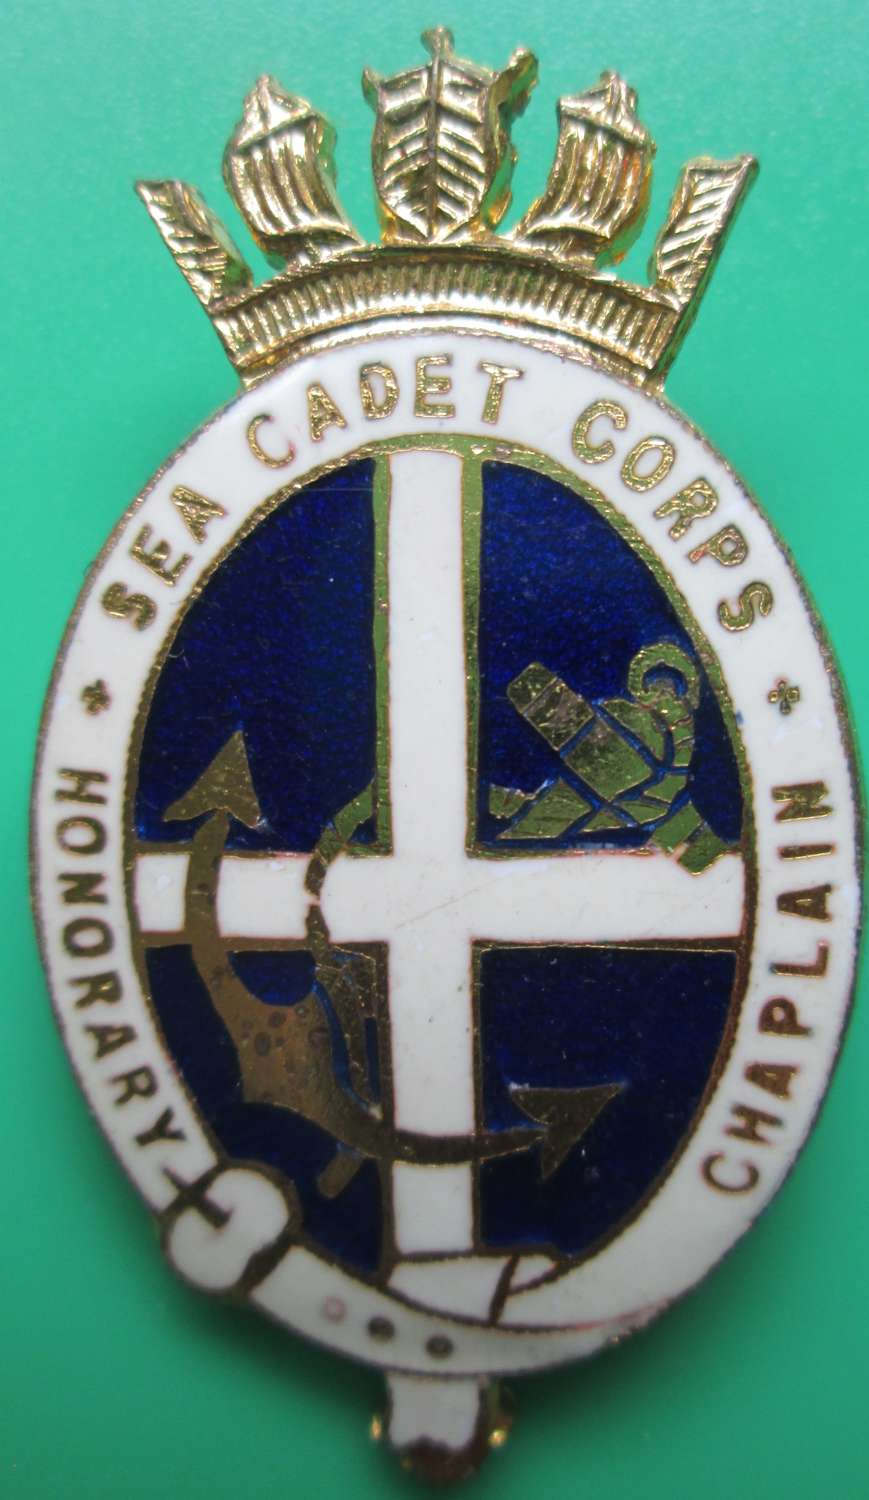 A SEA CADET CORPS CHAPLAINS BADGE